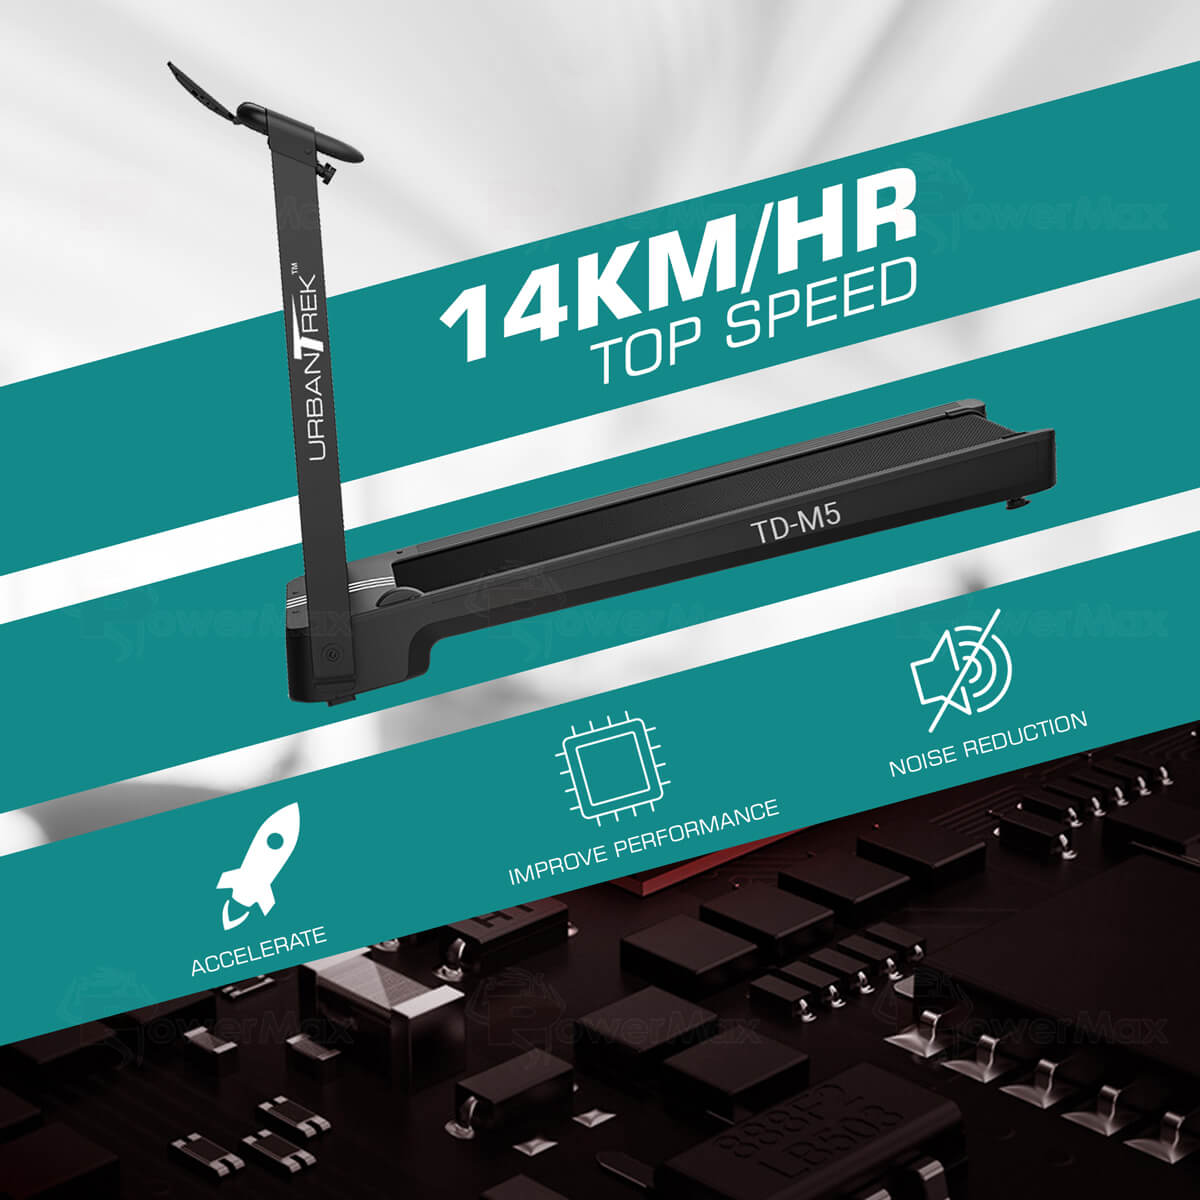 UrbanTrek TD-M5 Installation Free Treadmill with Bluetooth music function